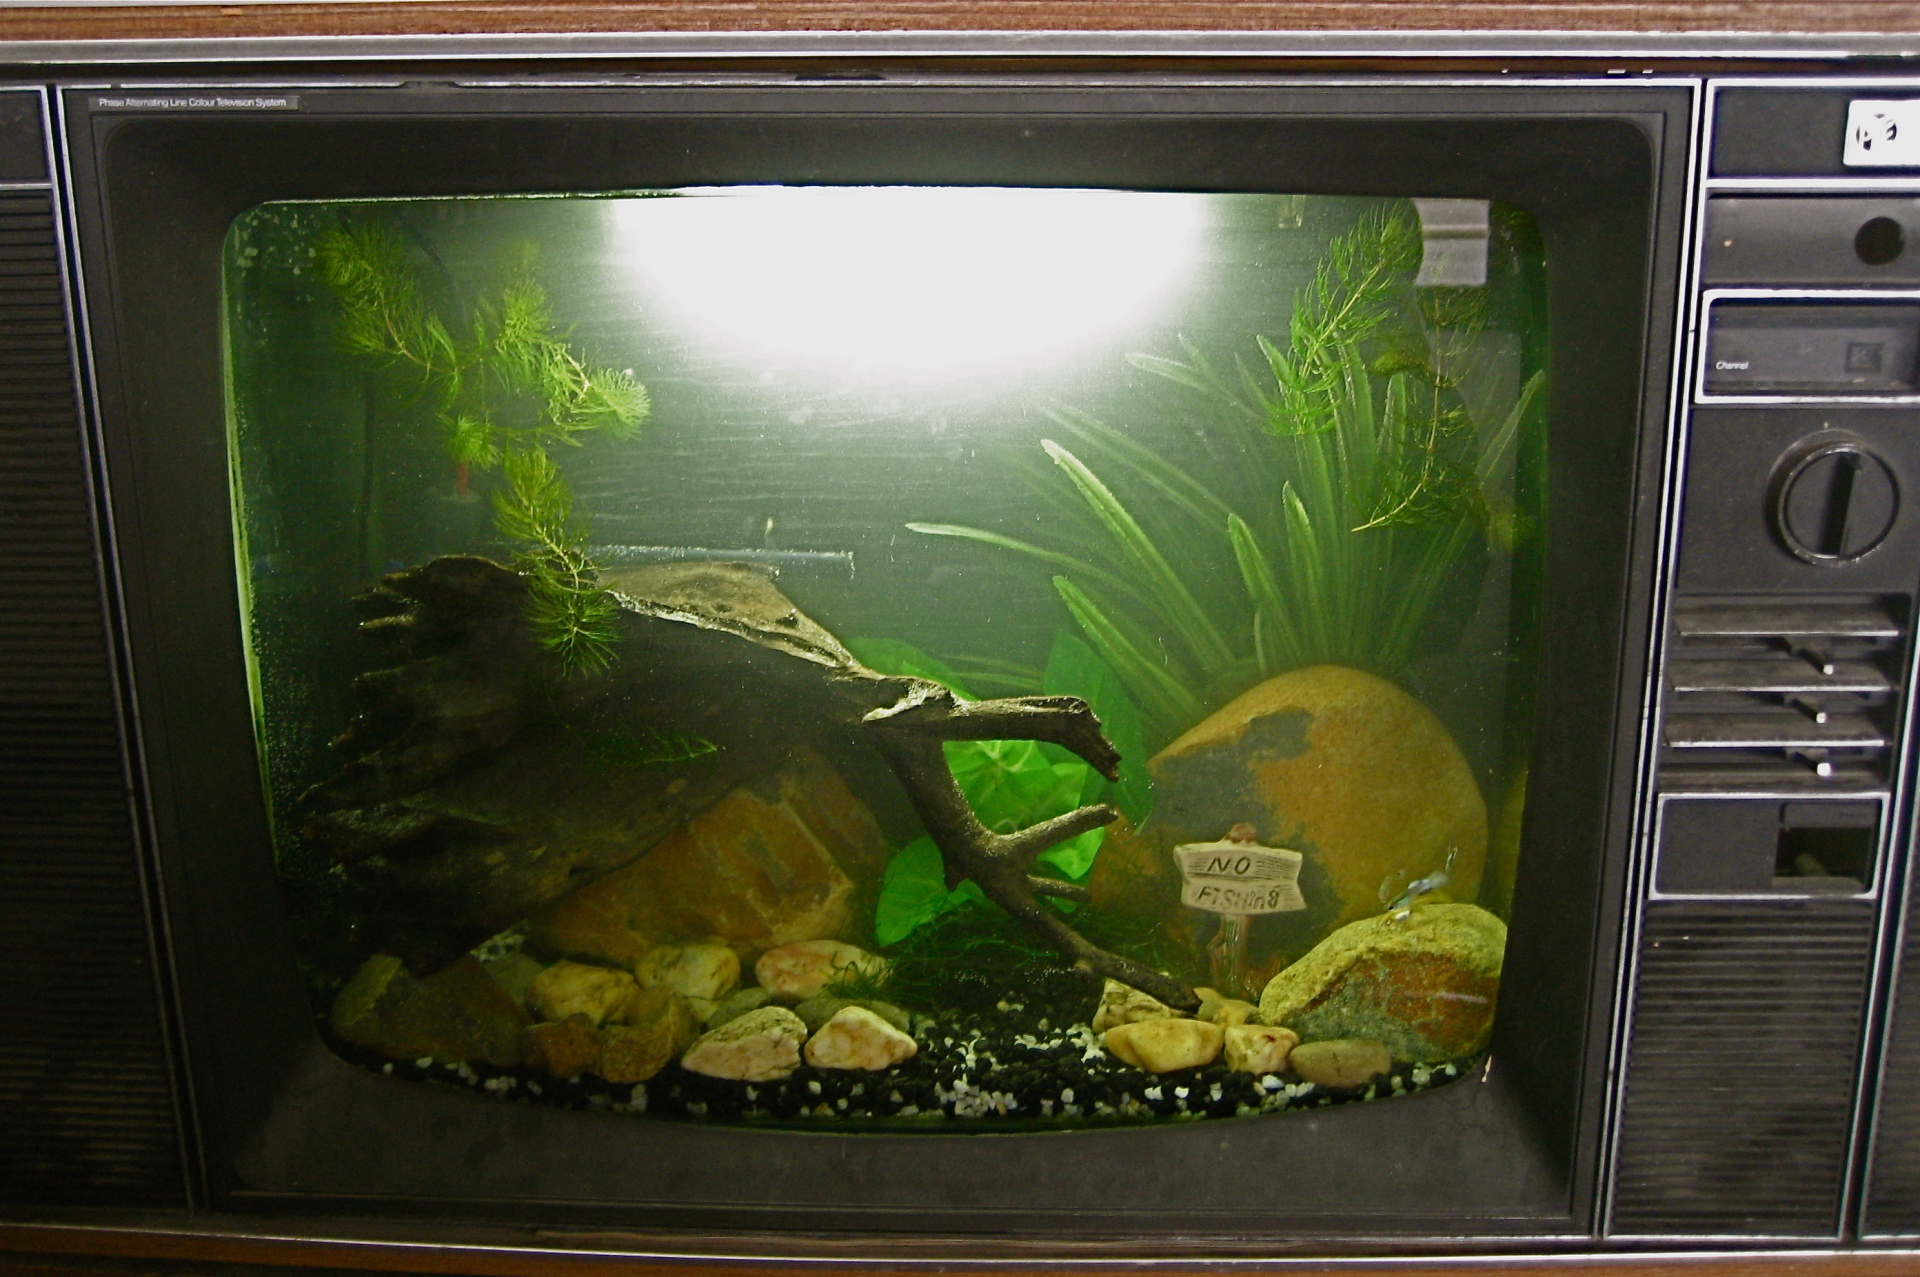 'Fish on the TV'